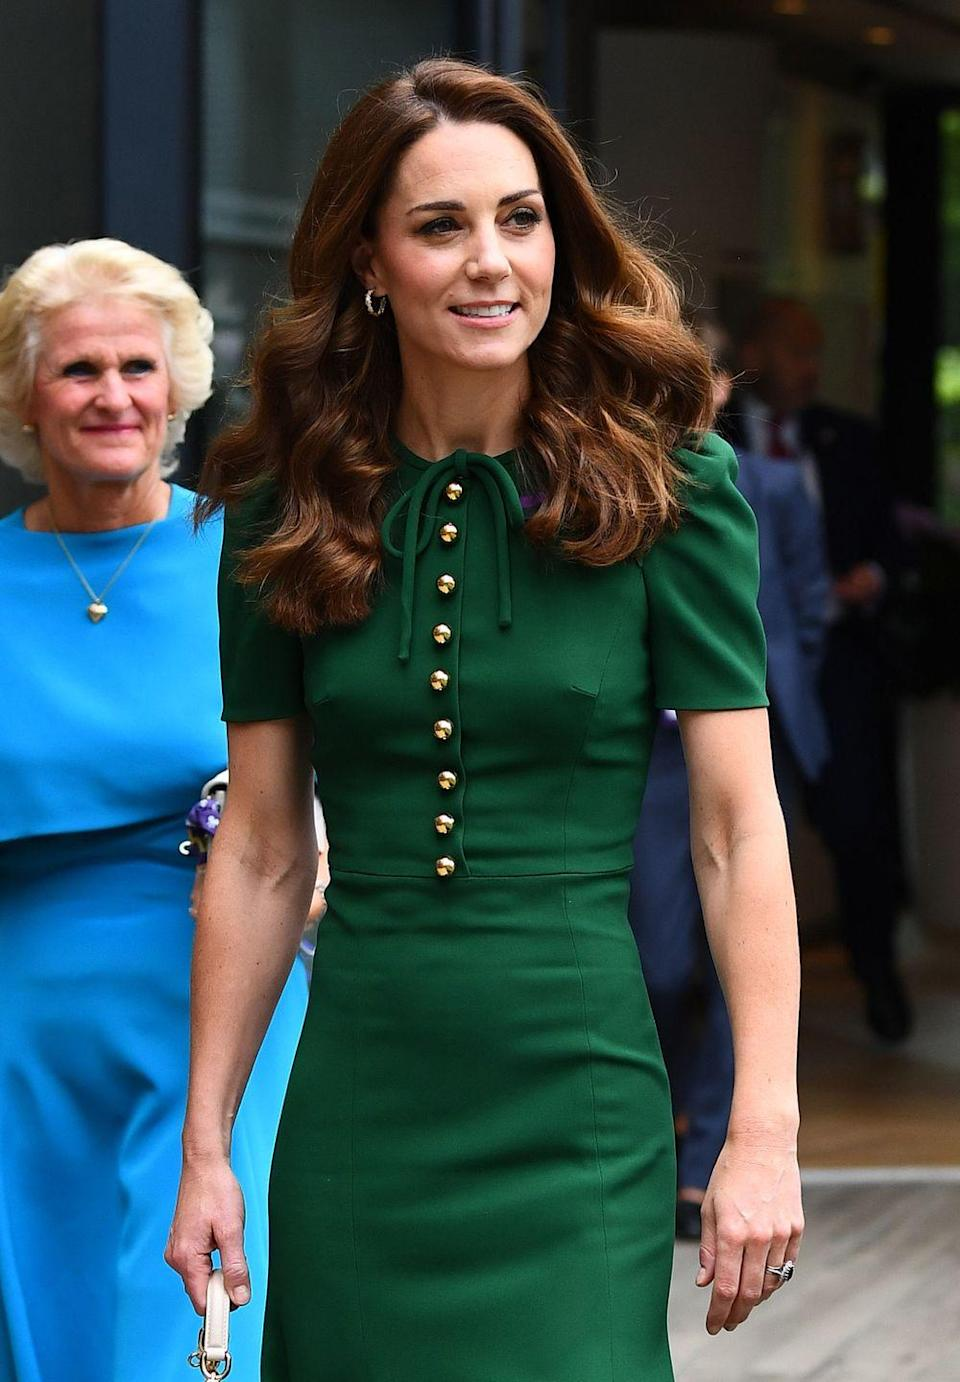 <p>The Duchess of Cambridge arrived at Wimbledon this morning wearing a rich green dress by Dolce and Gabbana, which she has worn before.</p>